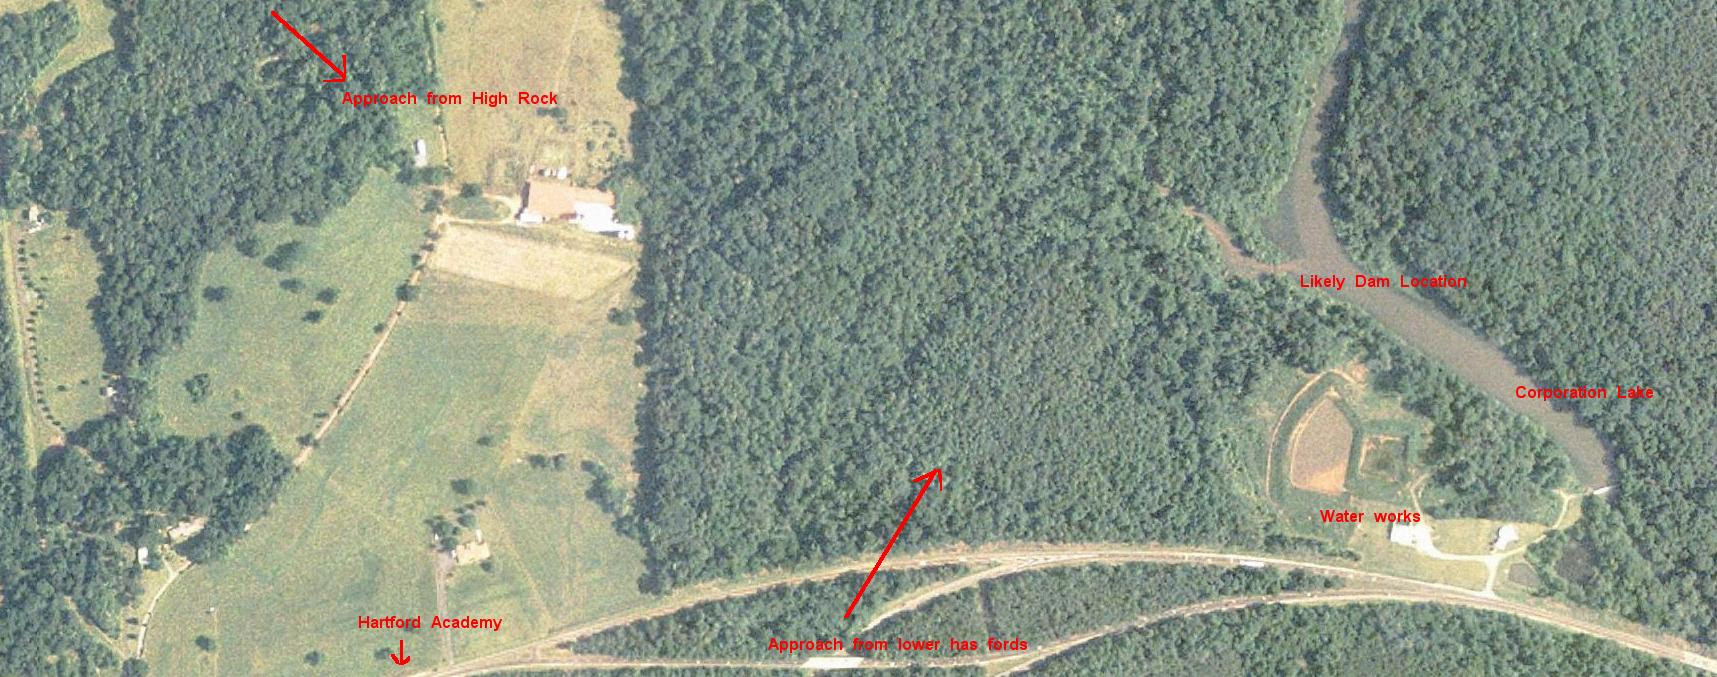 Aerial photo of hike site